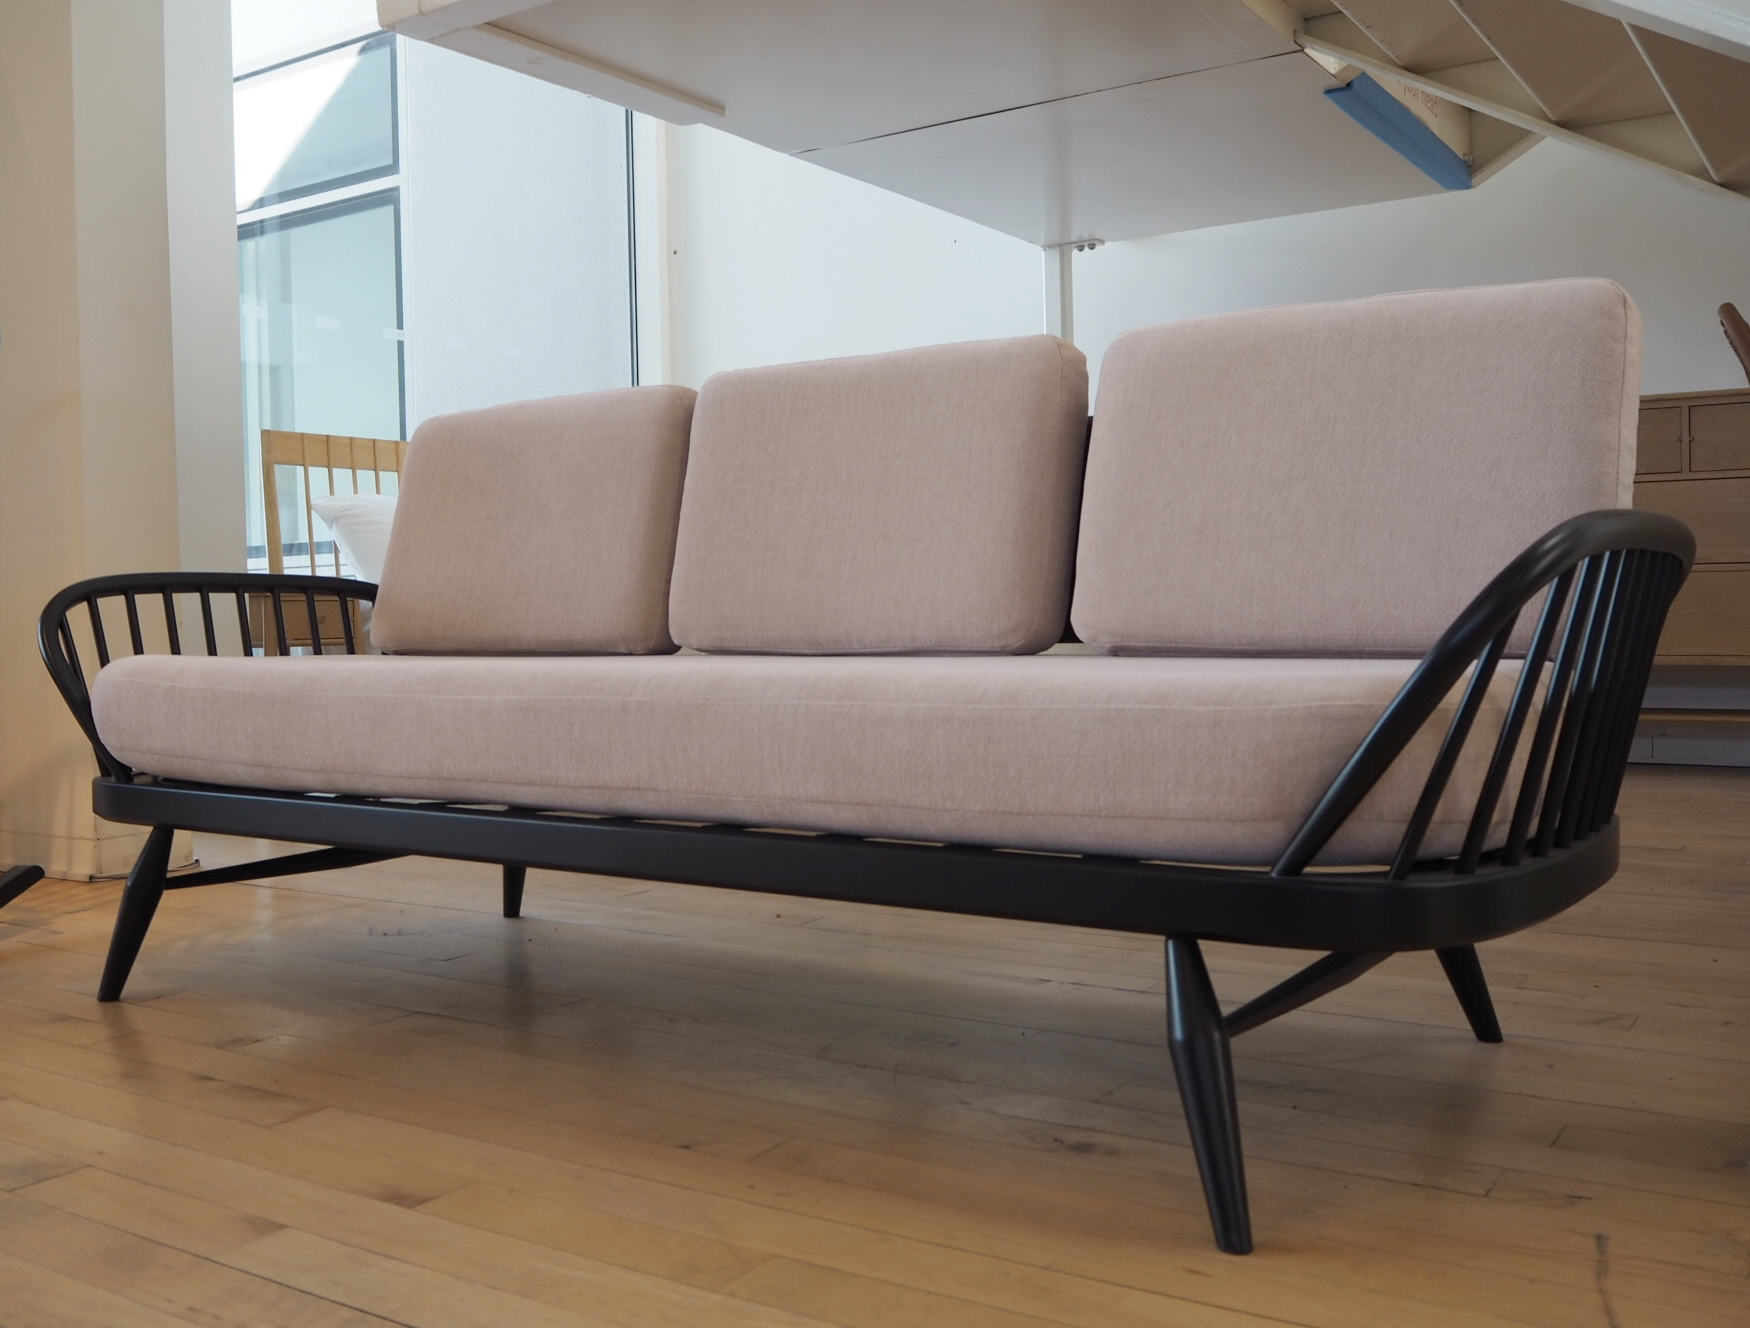 The Originals studio couch, one of many iconic designs seen at the showroom.